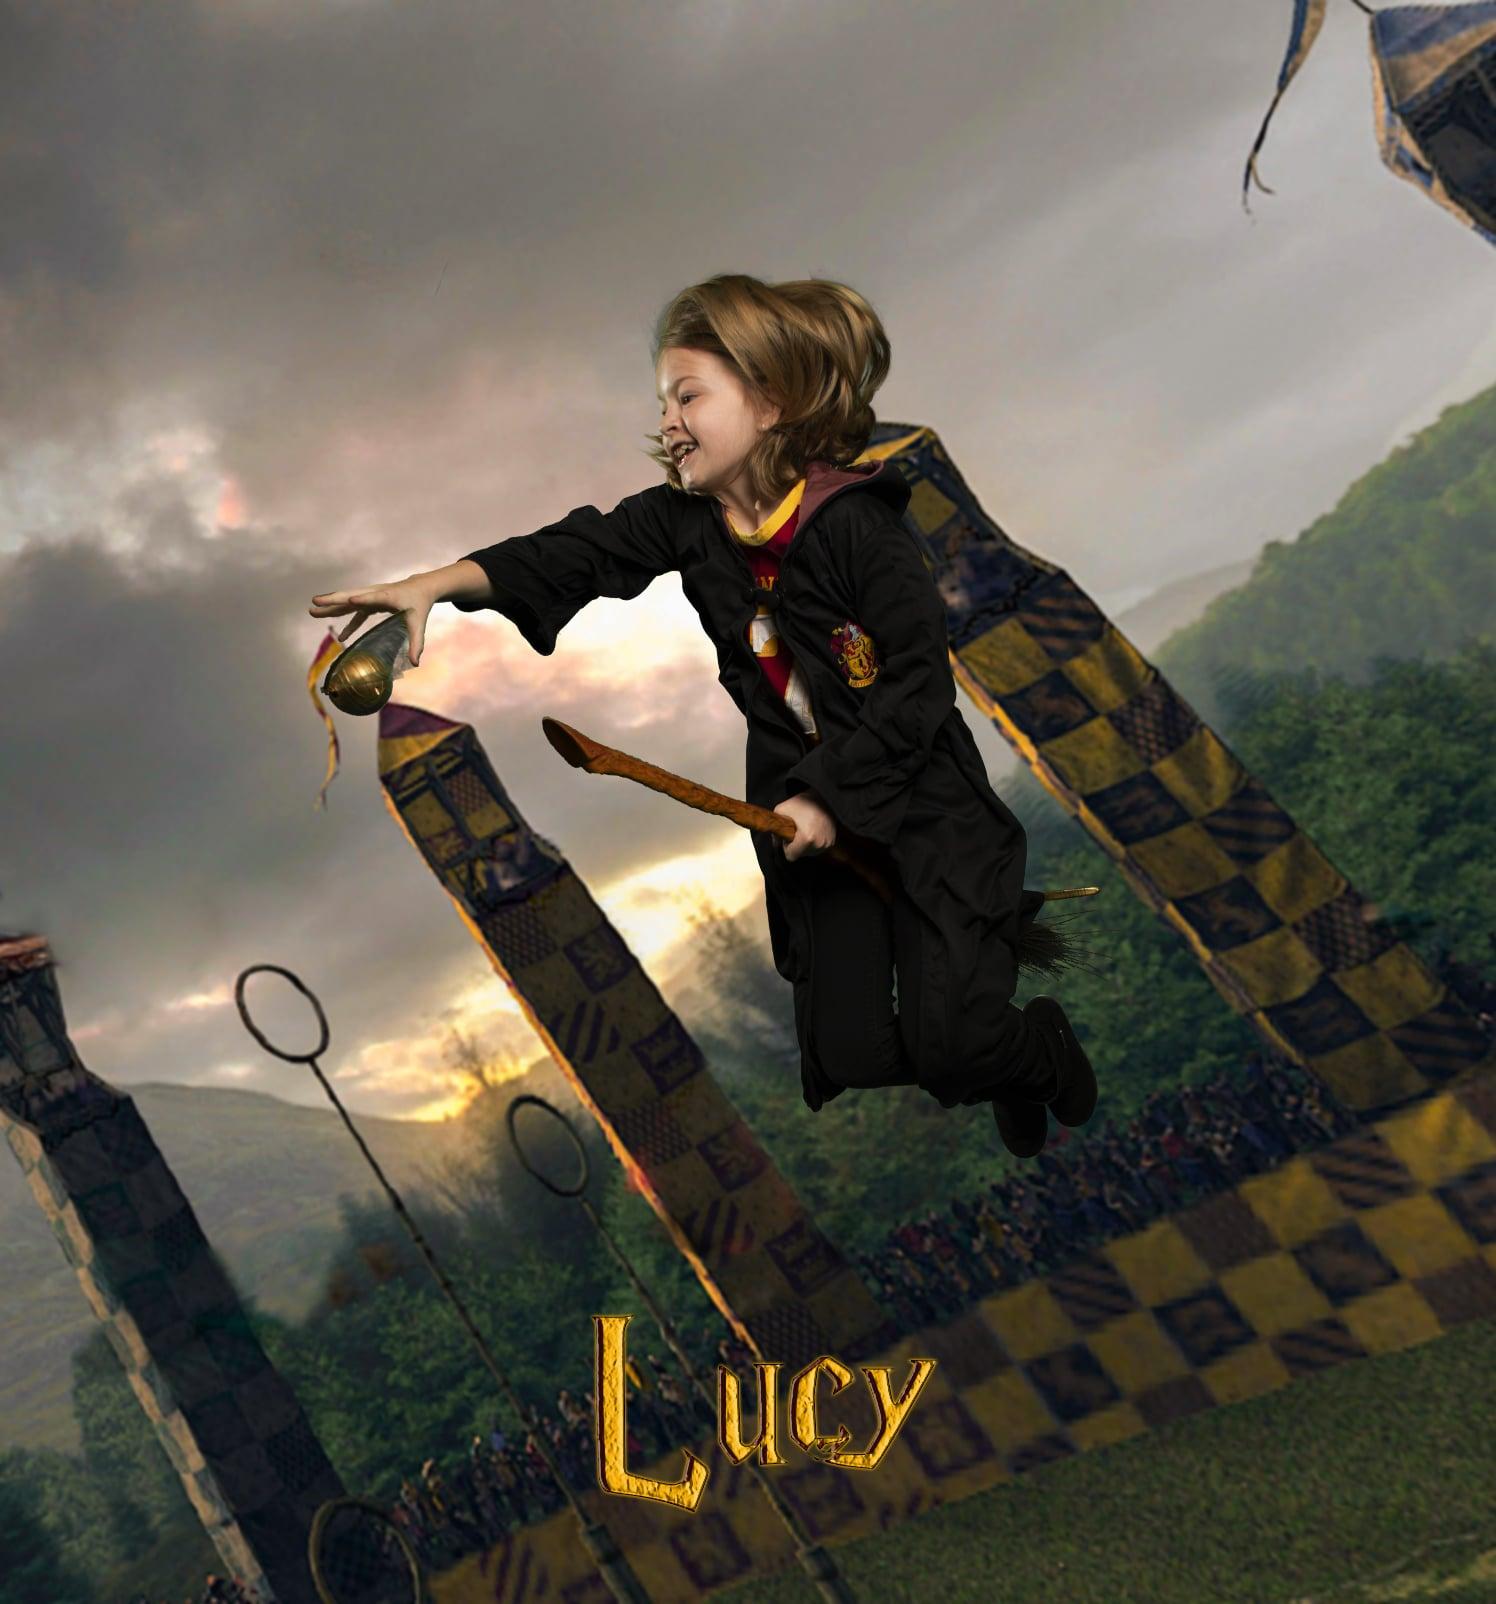 Ethan's sister, 9-year-old Lucy, also had her chance to become a Gryffindor Seeker.